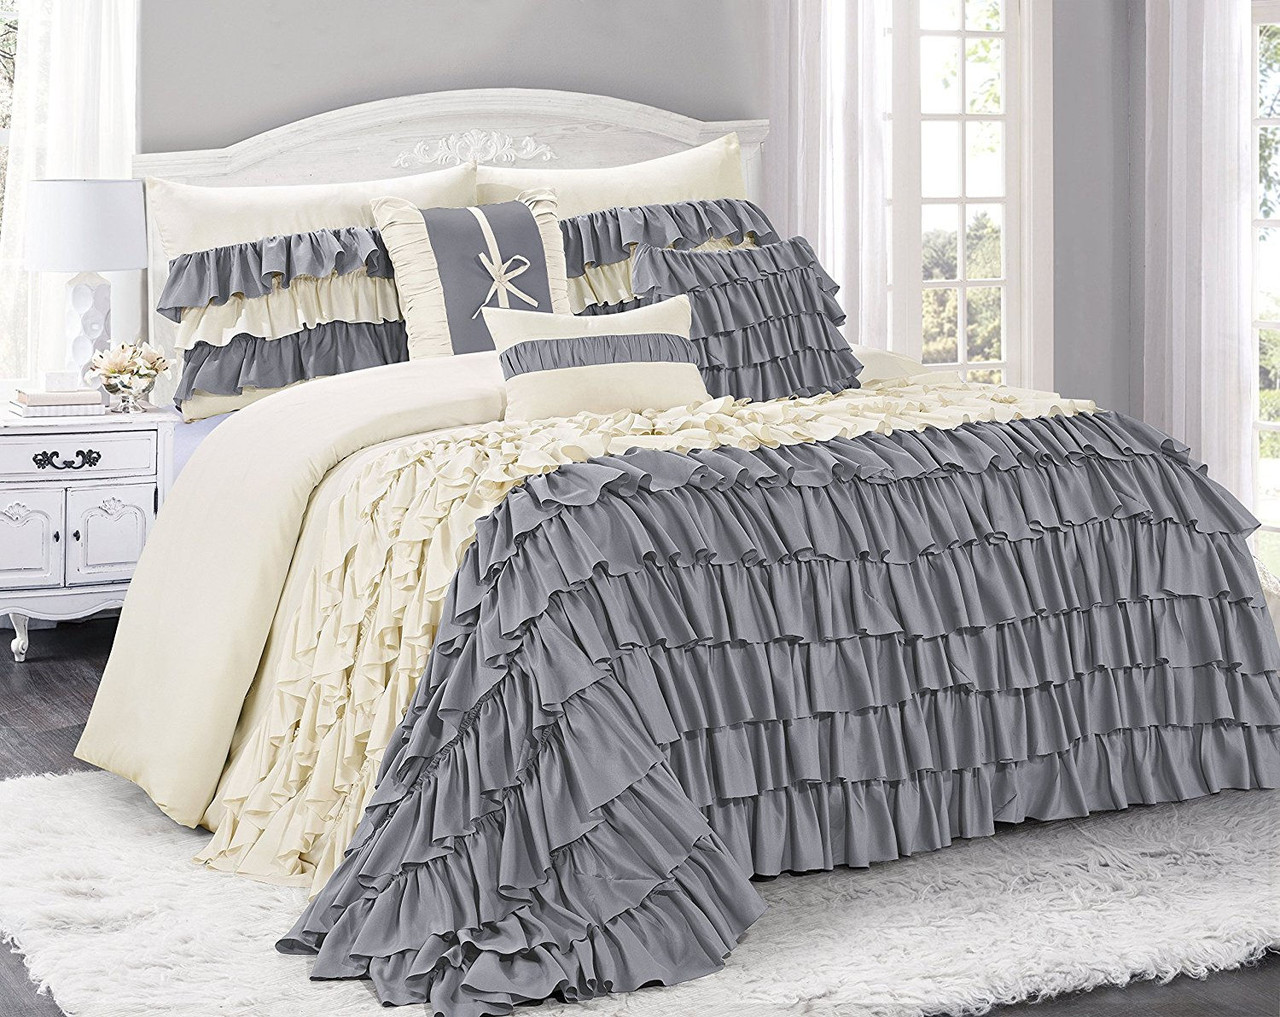 King 7 PIECE COMFORTER SET Cal King Queen BED IN A BAG 2 COLORS